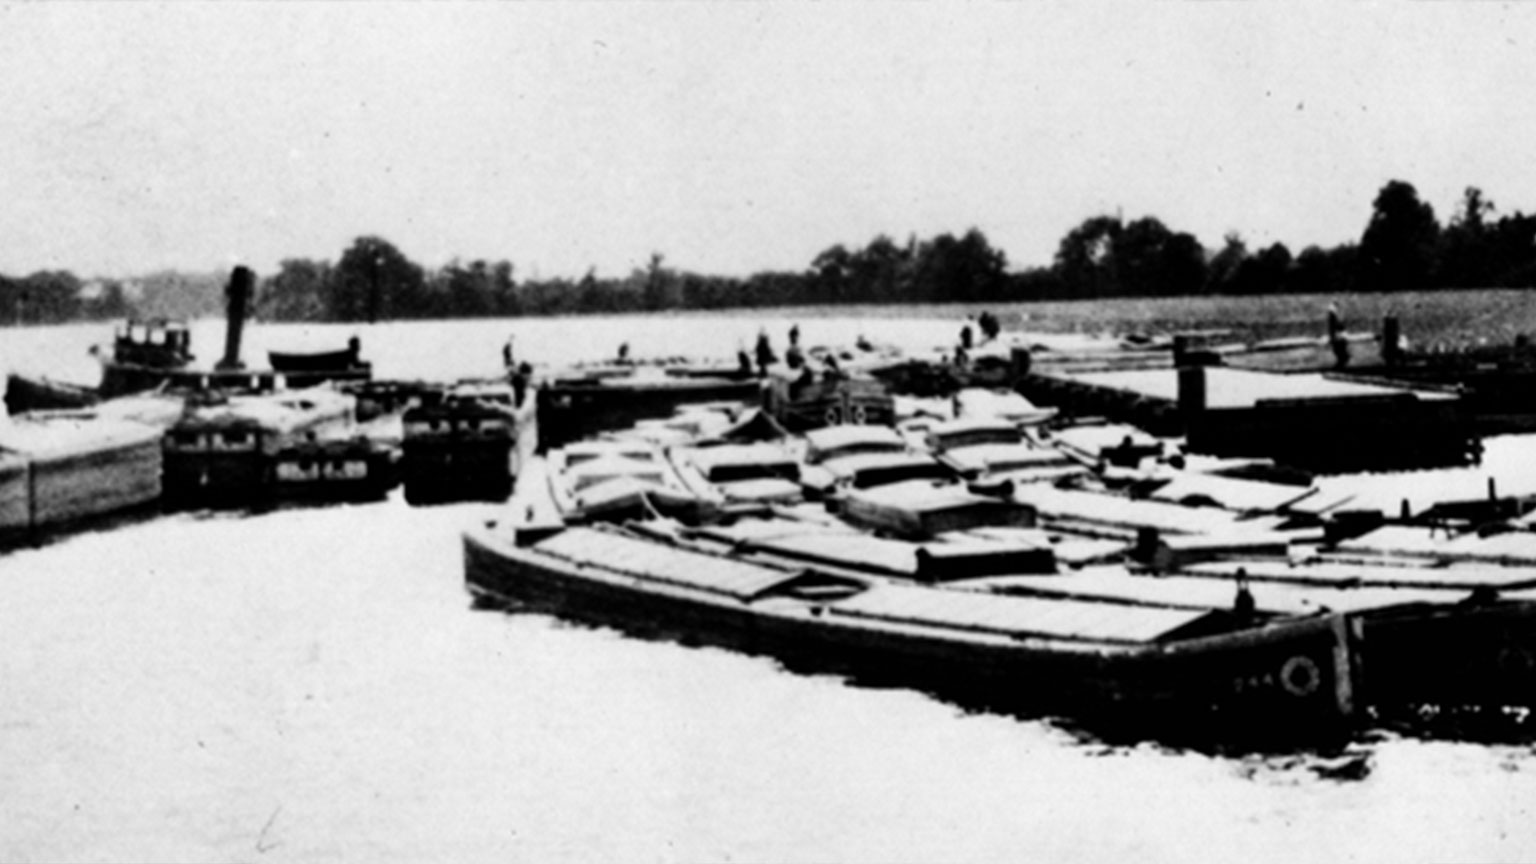 Just as mule ferries needed to transport mules, canal boats needed to be pulled by tugboats as they had no engine without the mules.